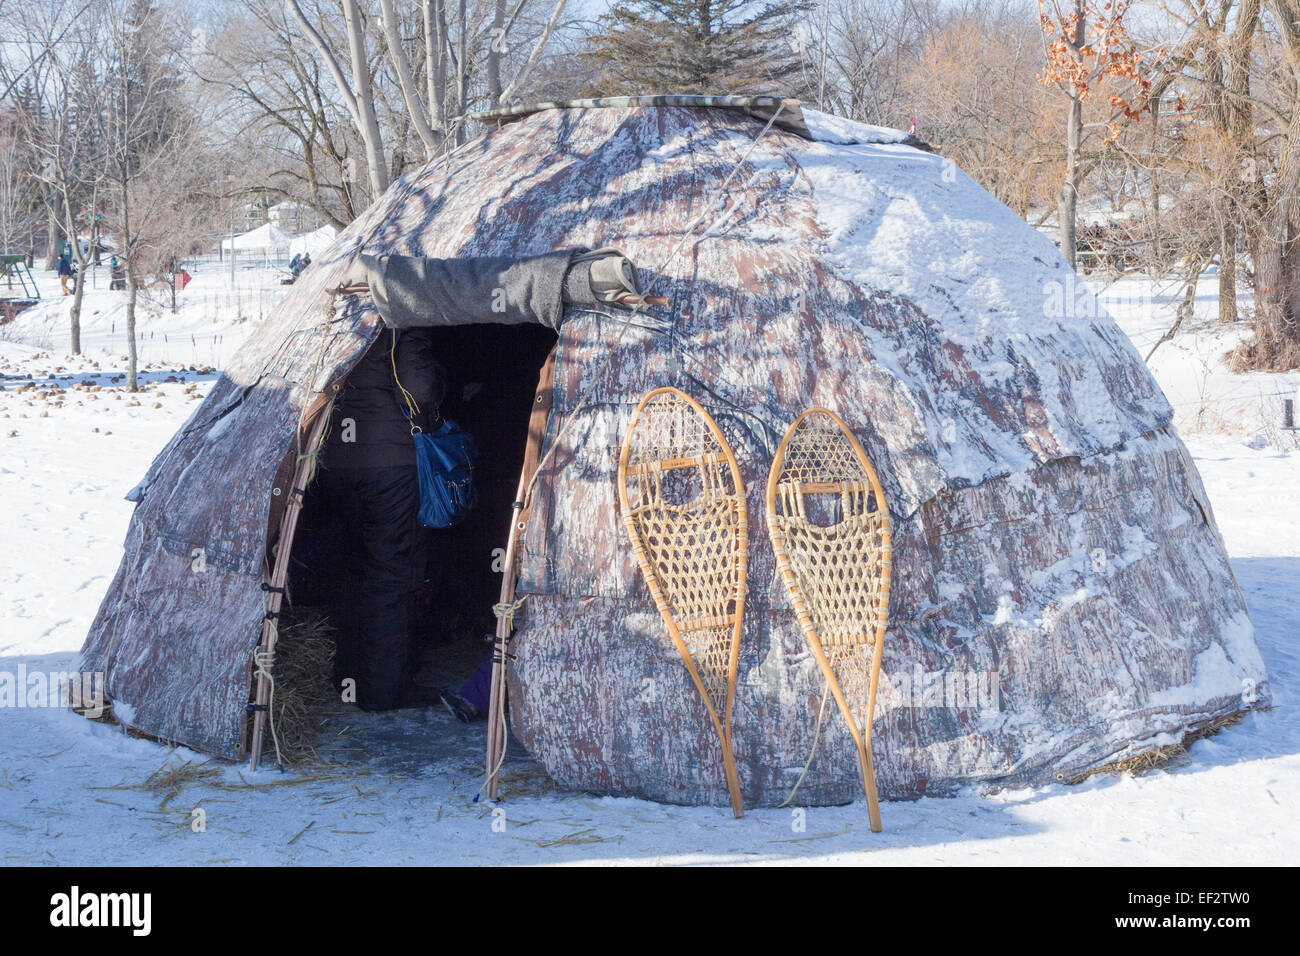 wigwam-at-the-winter-festival-in-canning